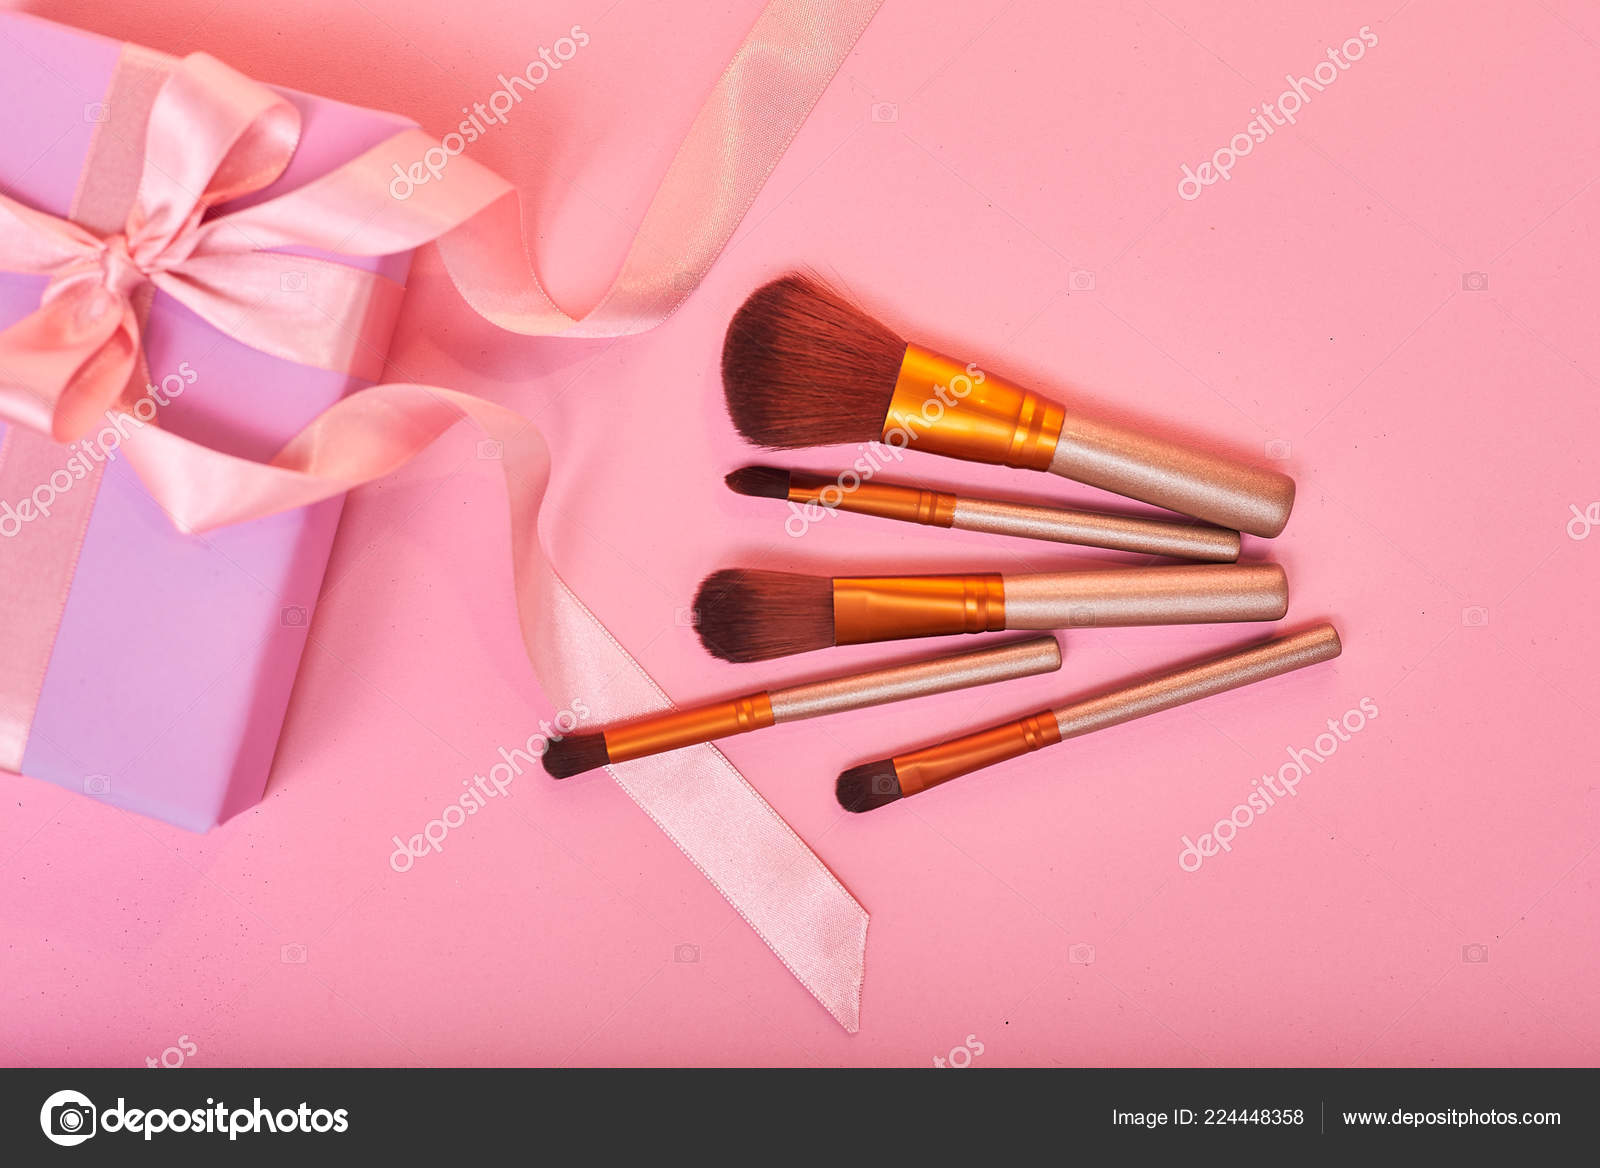 Gift Ideas Makeup Brushes Pink Gift Box Stock Photo C Stenkovlad 224448358